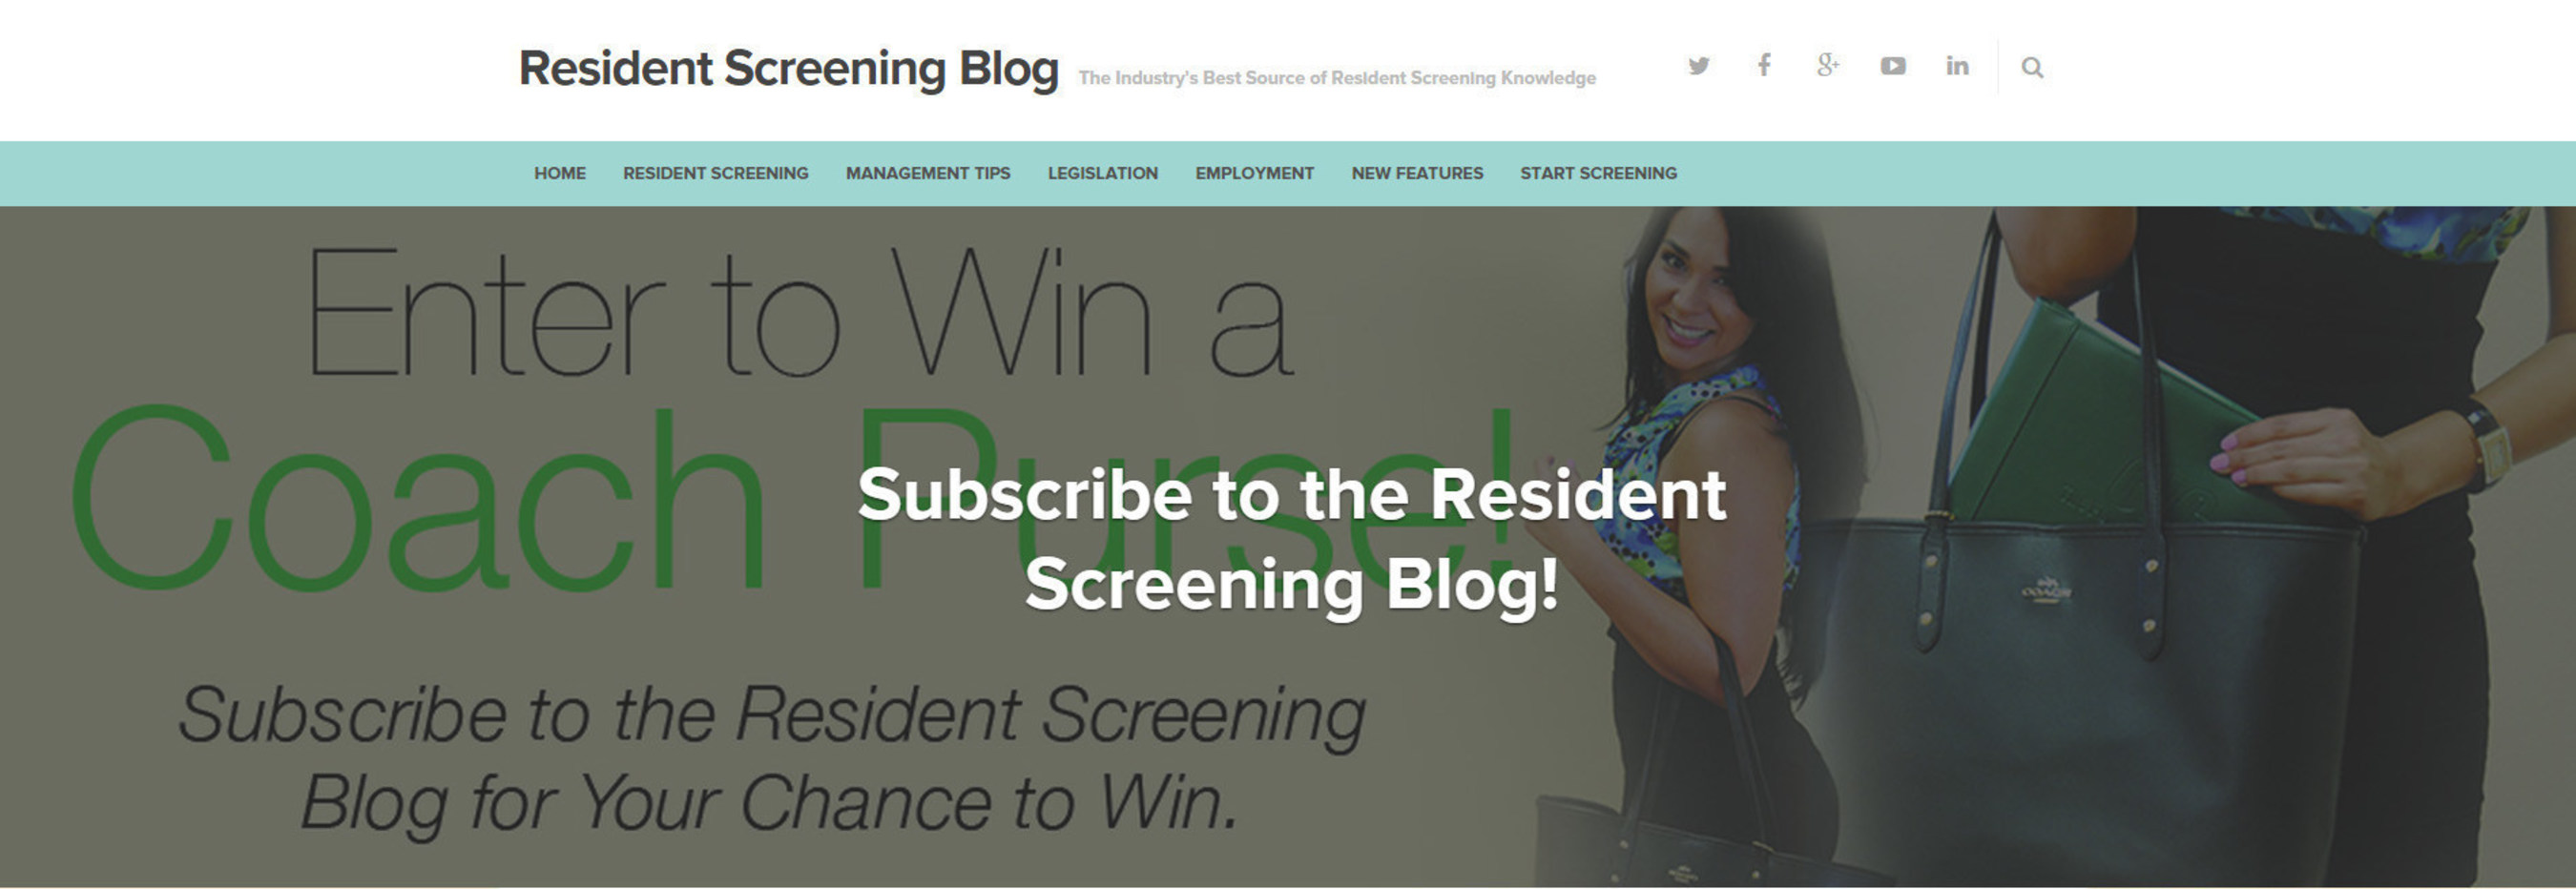 CIC announces new Resident Screening Blog with a Contest for New Followers